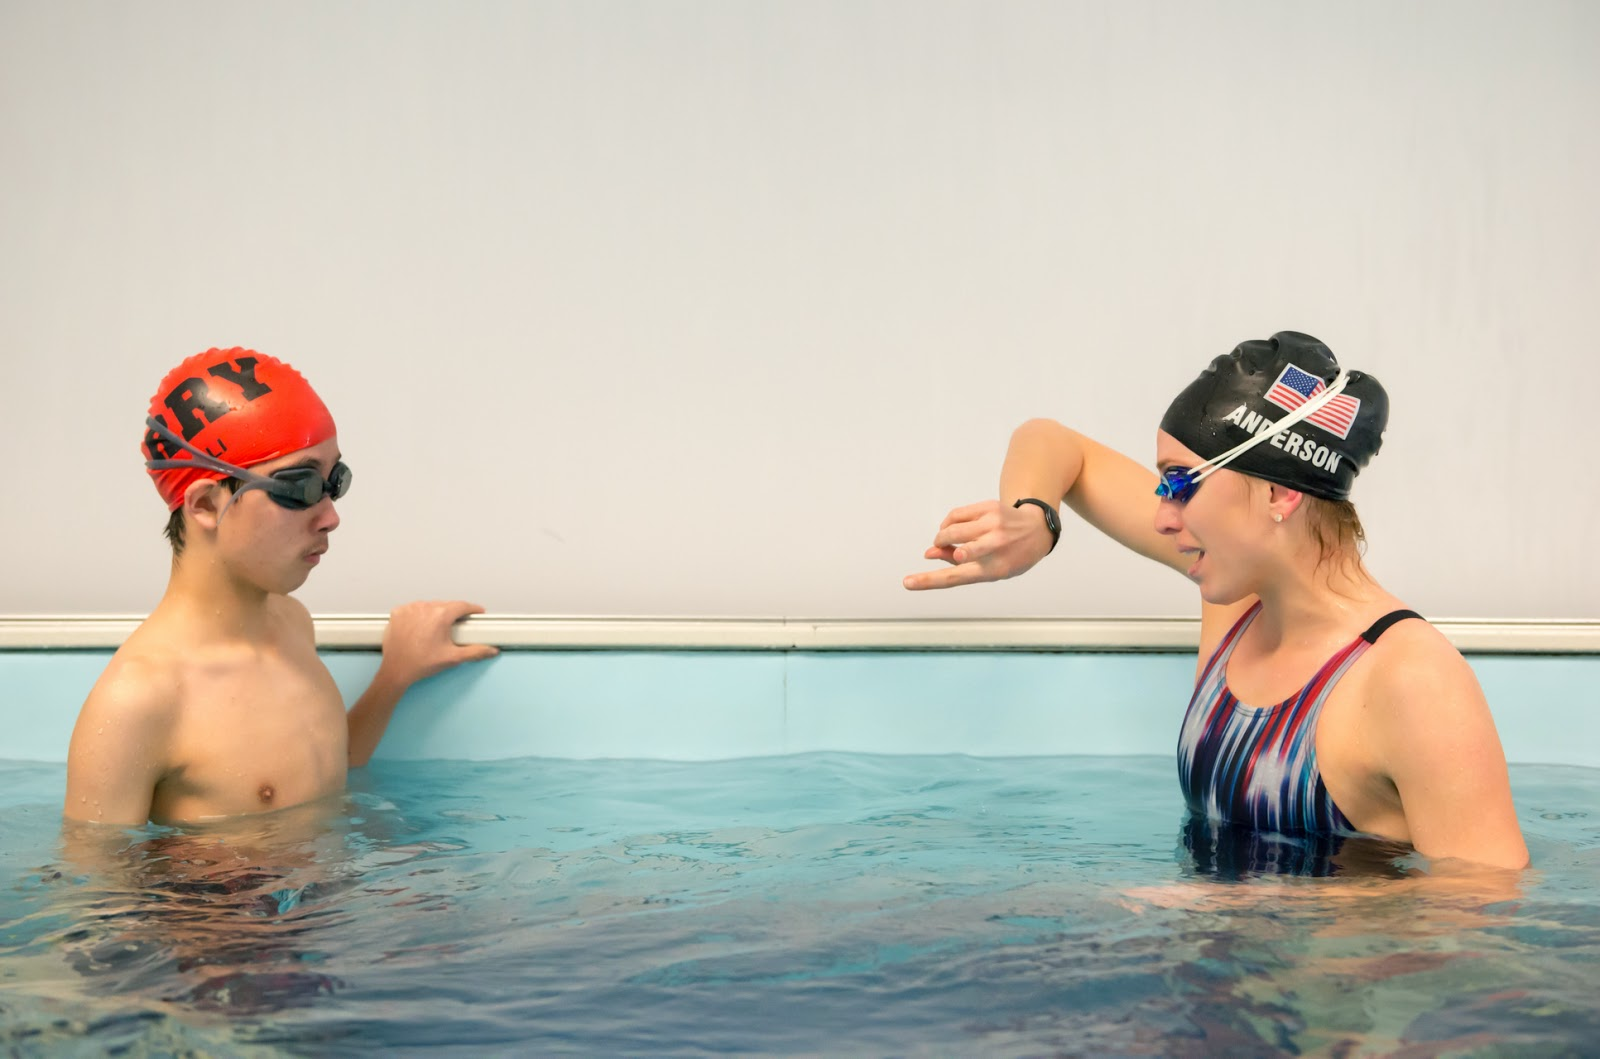 Olympian Alyssa Anderson gives pointers to 13-year-old Andrew Li